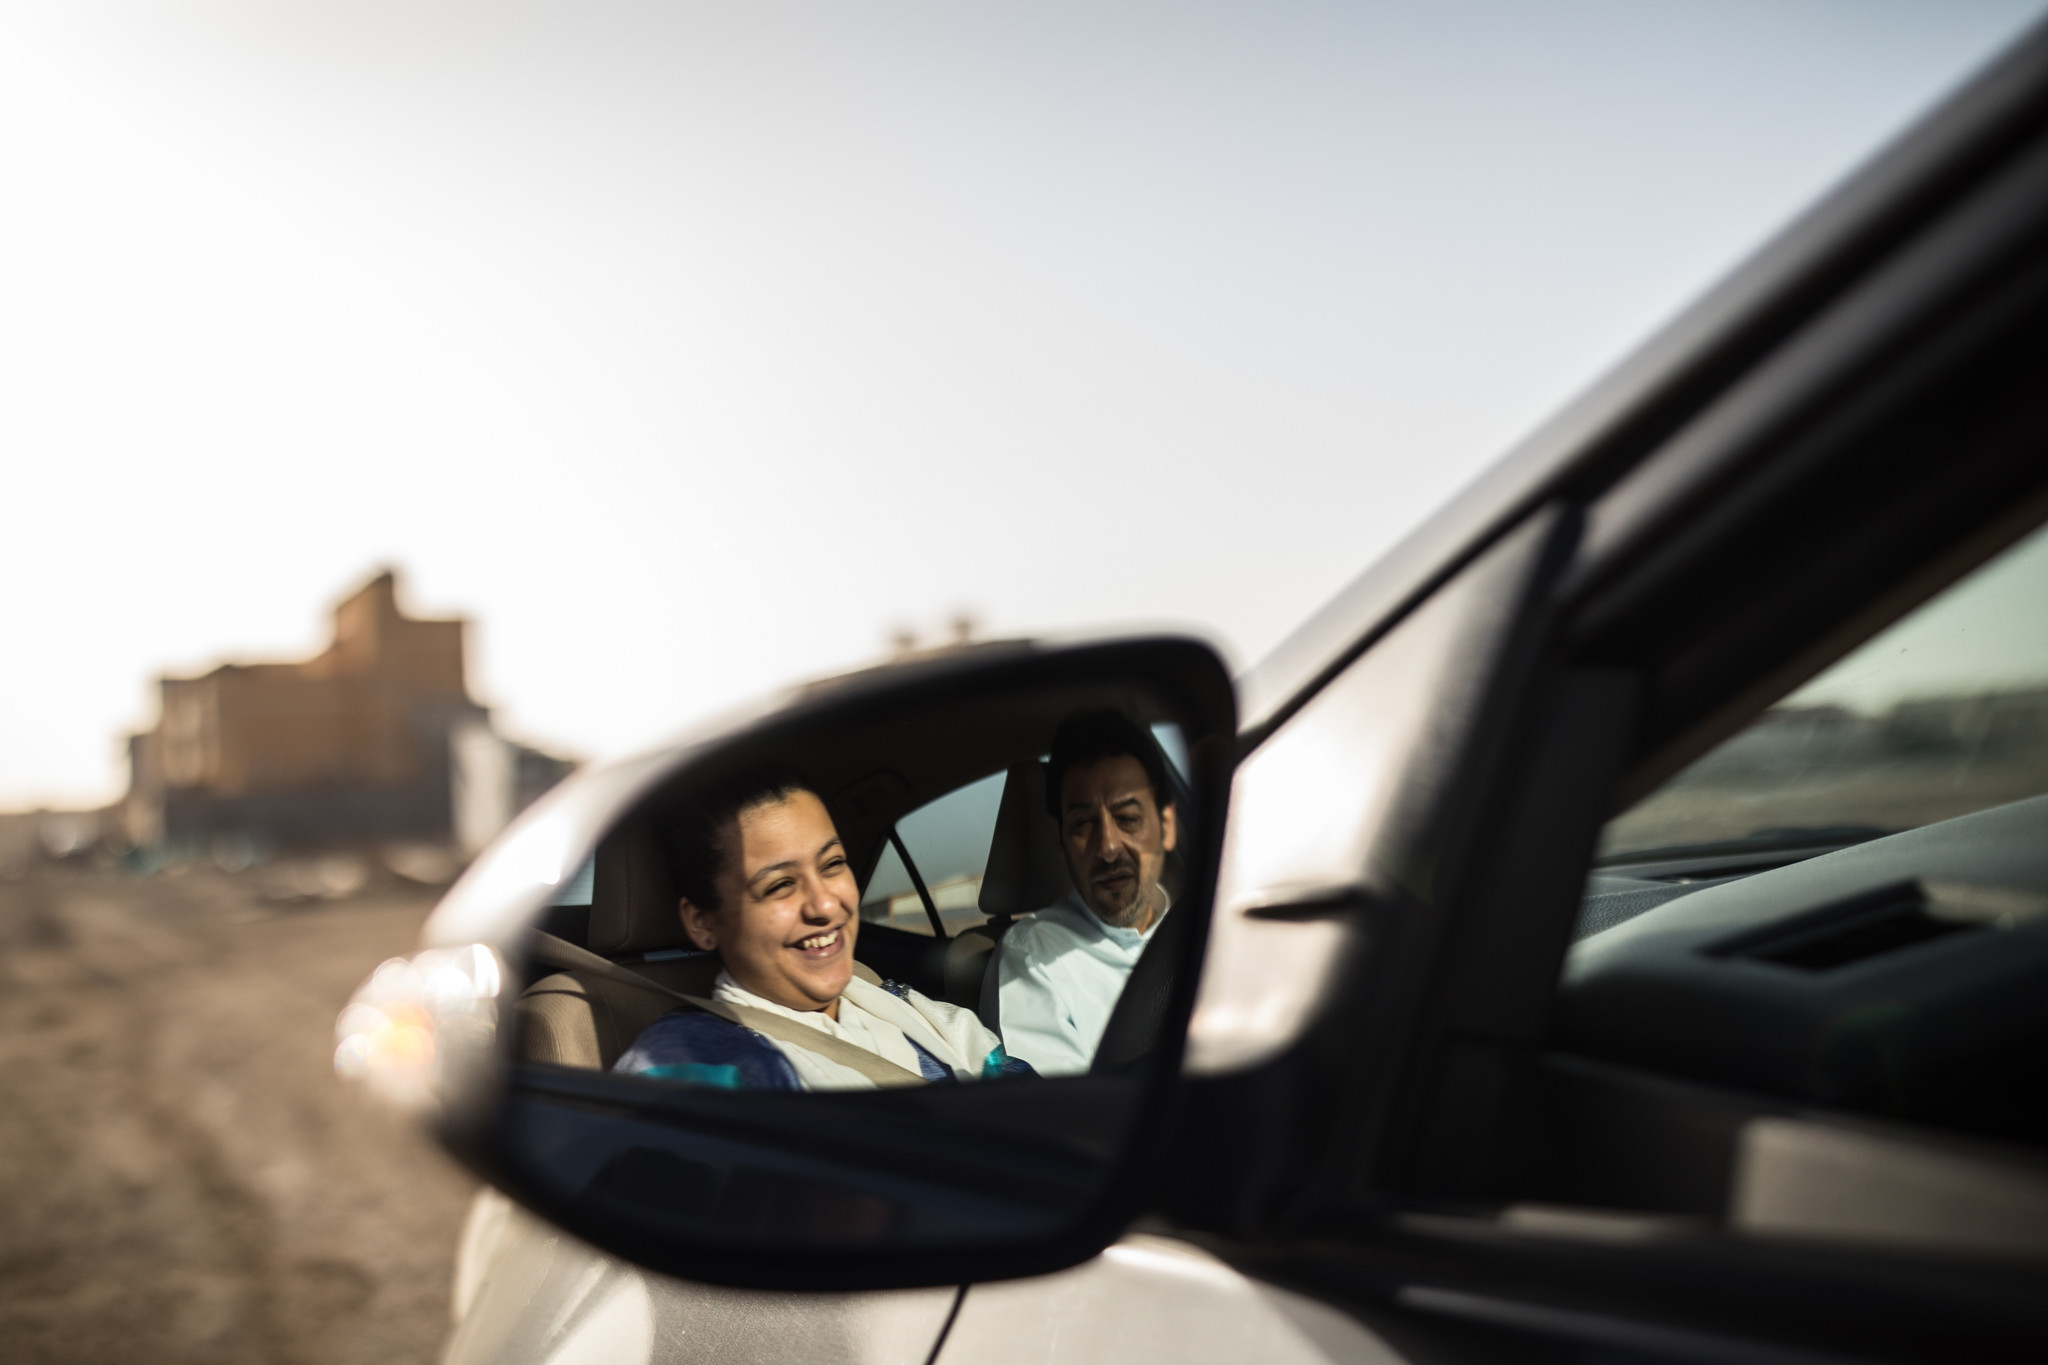 Tala Murad, a Saudi Arabian university student, receives a driving lesson from her father, Midhat.